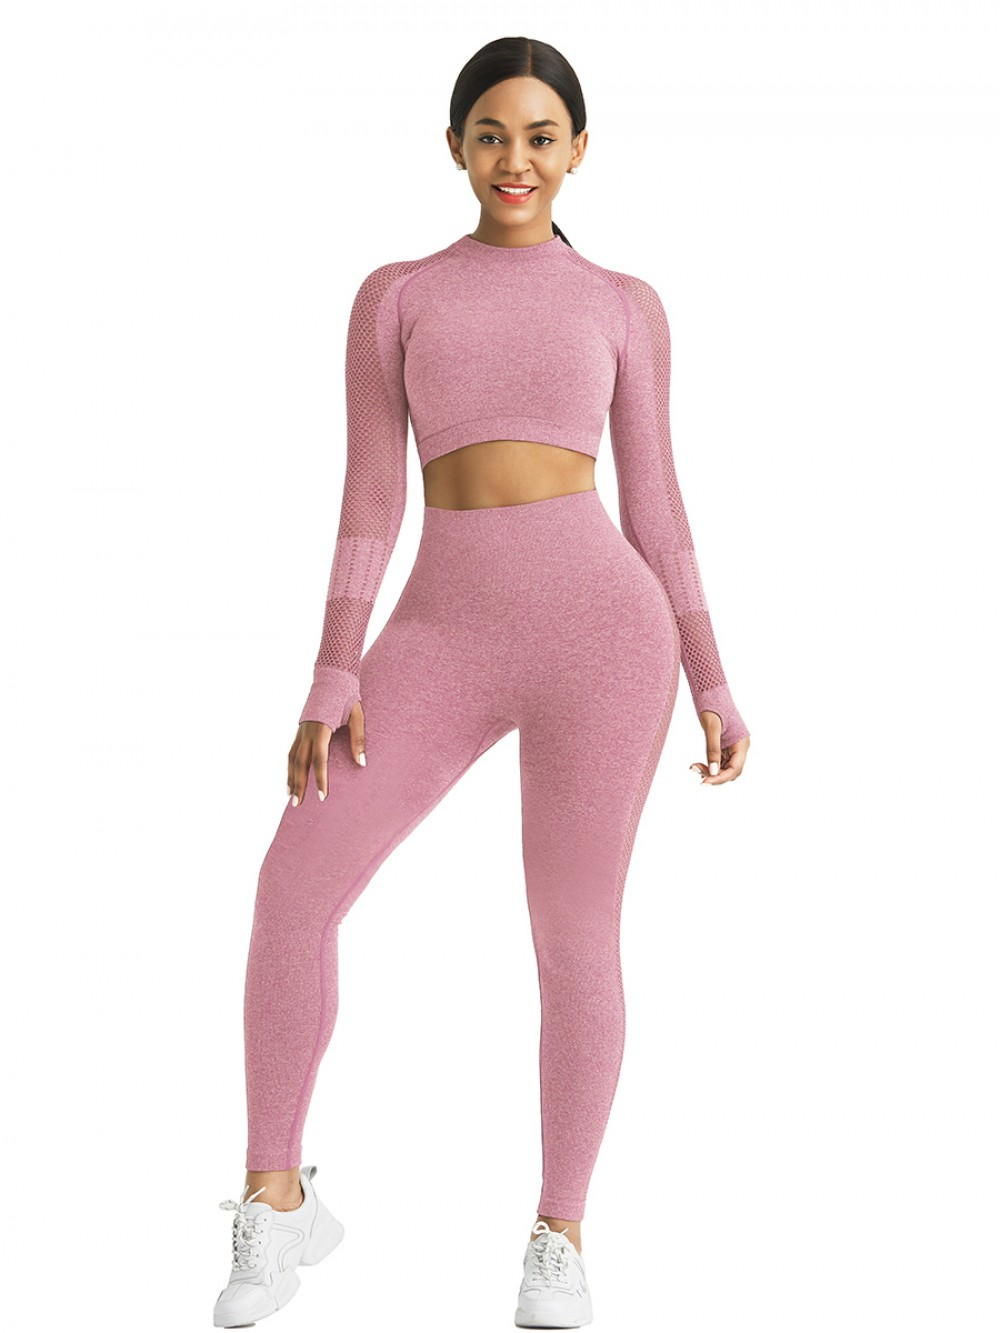 Comfortable Light Pink Mesh Patchwork Sport Top Full Sleeve For Running